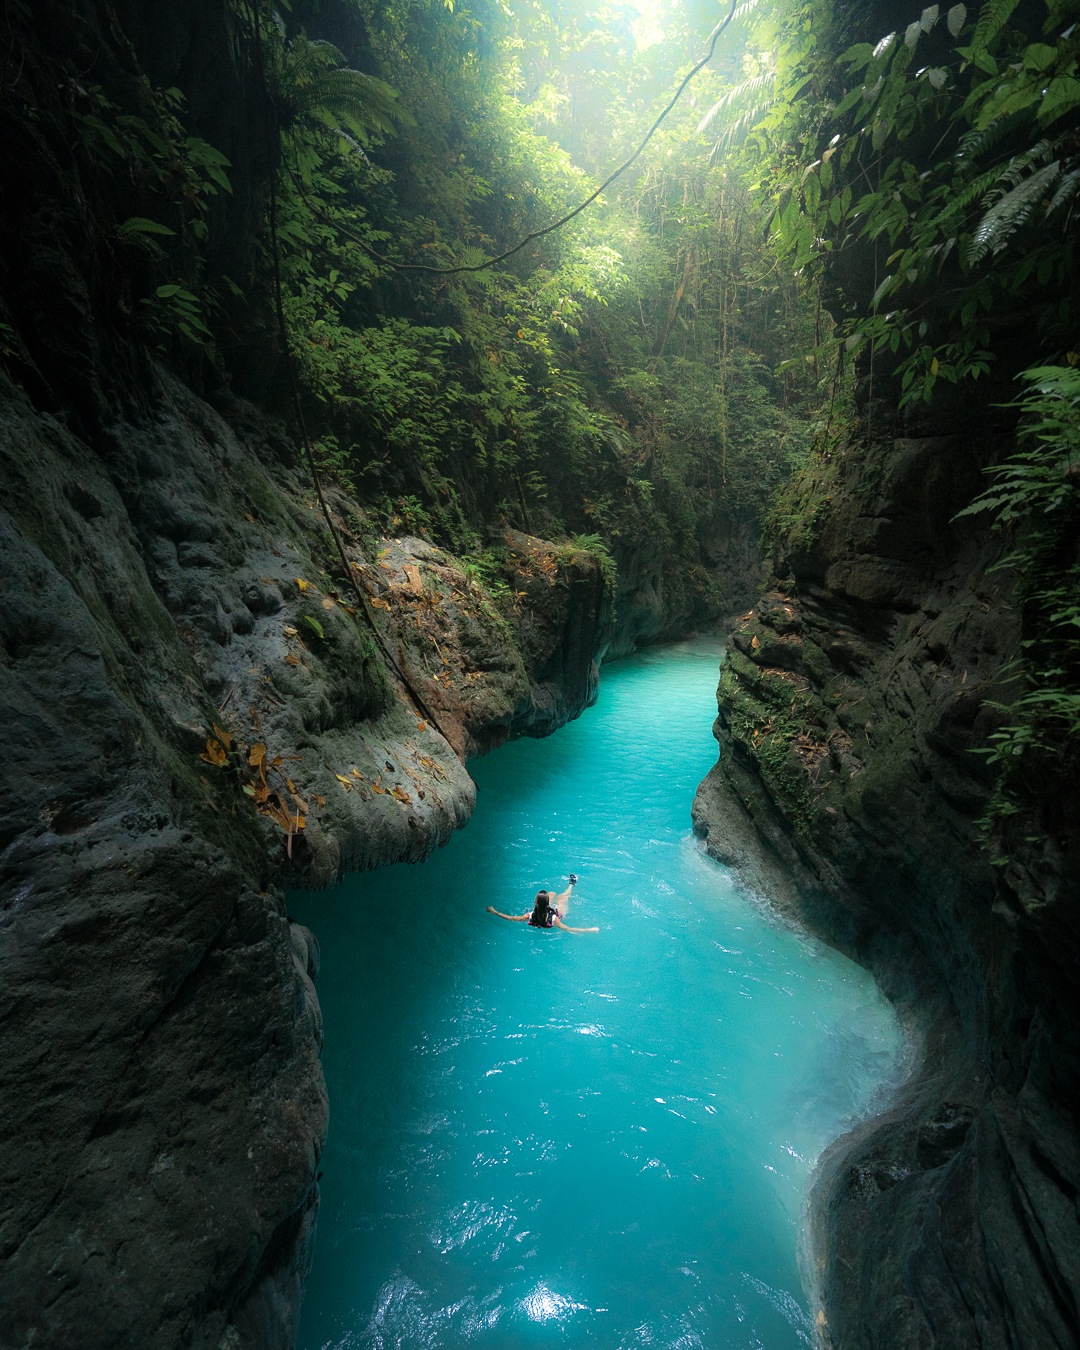 Floating down Kawasan Canyon on Cebu Island in the Philippines. Photo by Quin Schrock